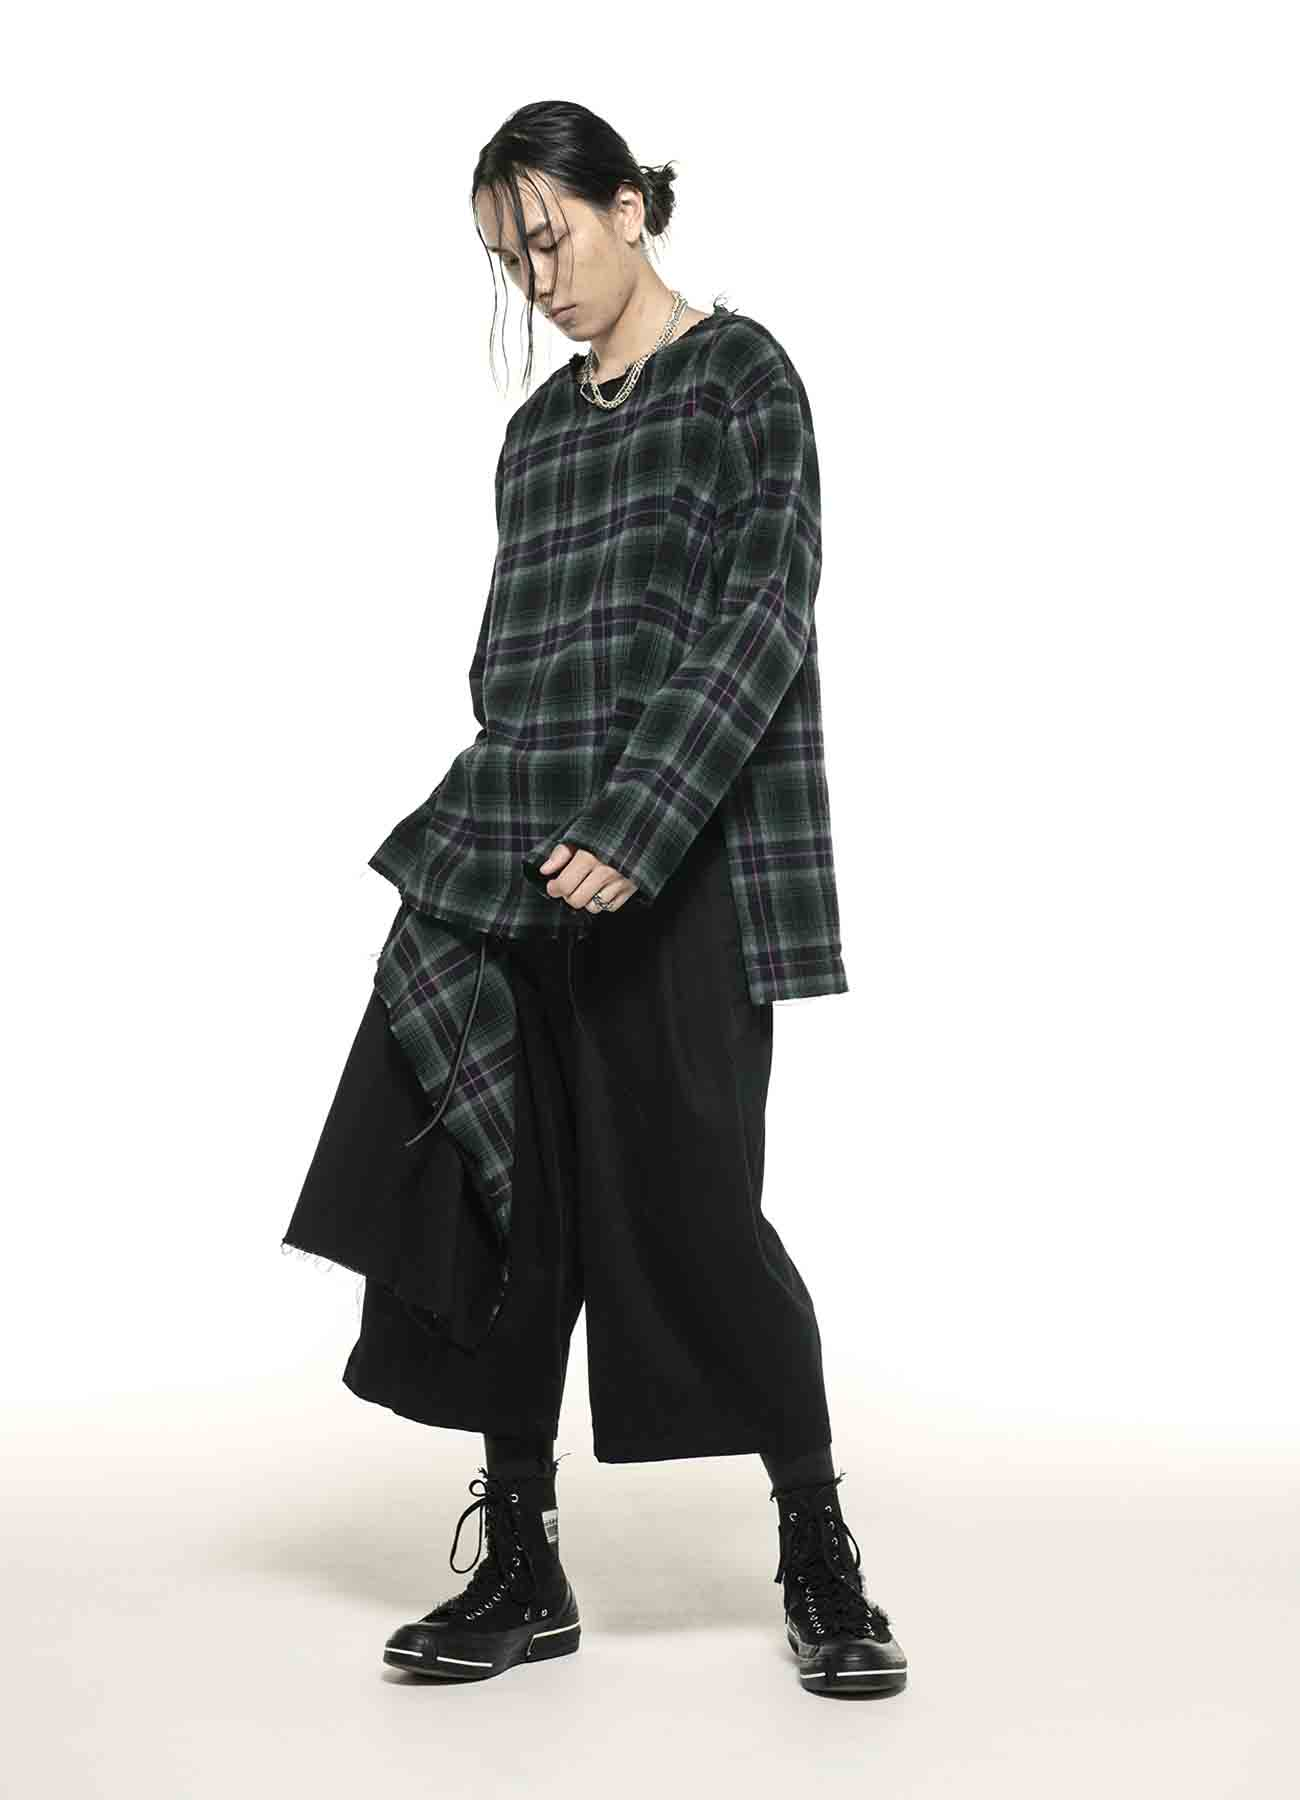 20/Cotton Twill One Tack 6part Length Side Shaggy Tartan Check Wrap Pants